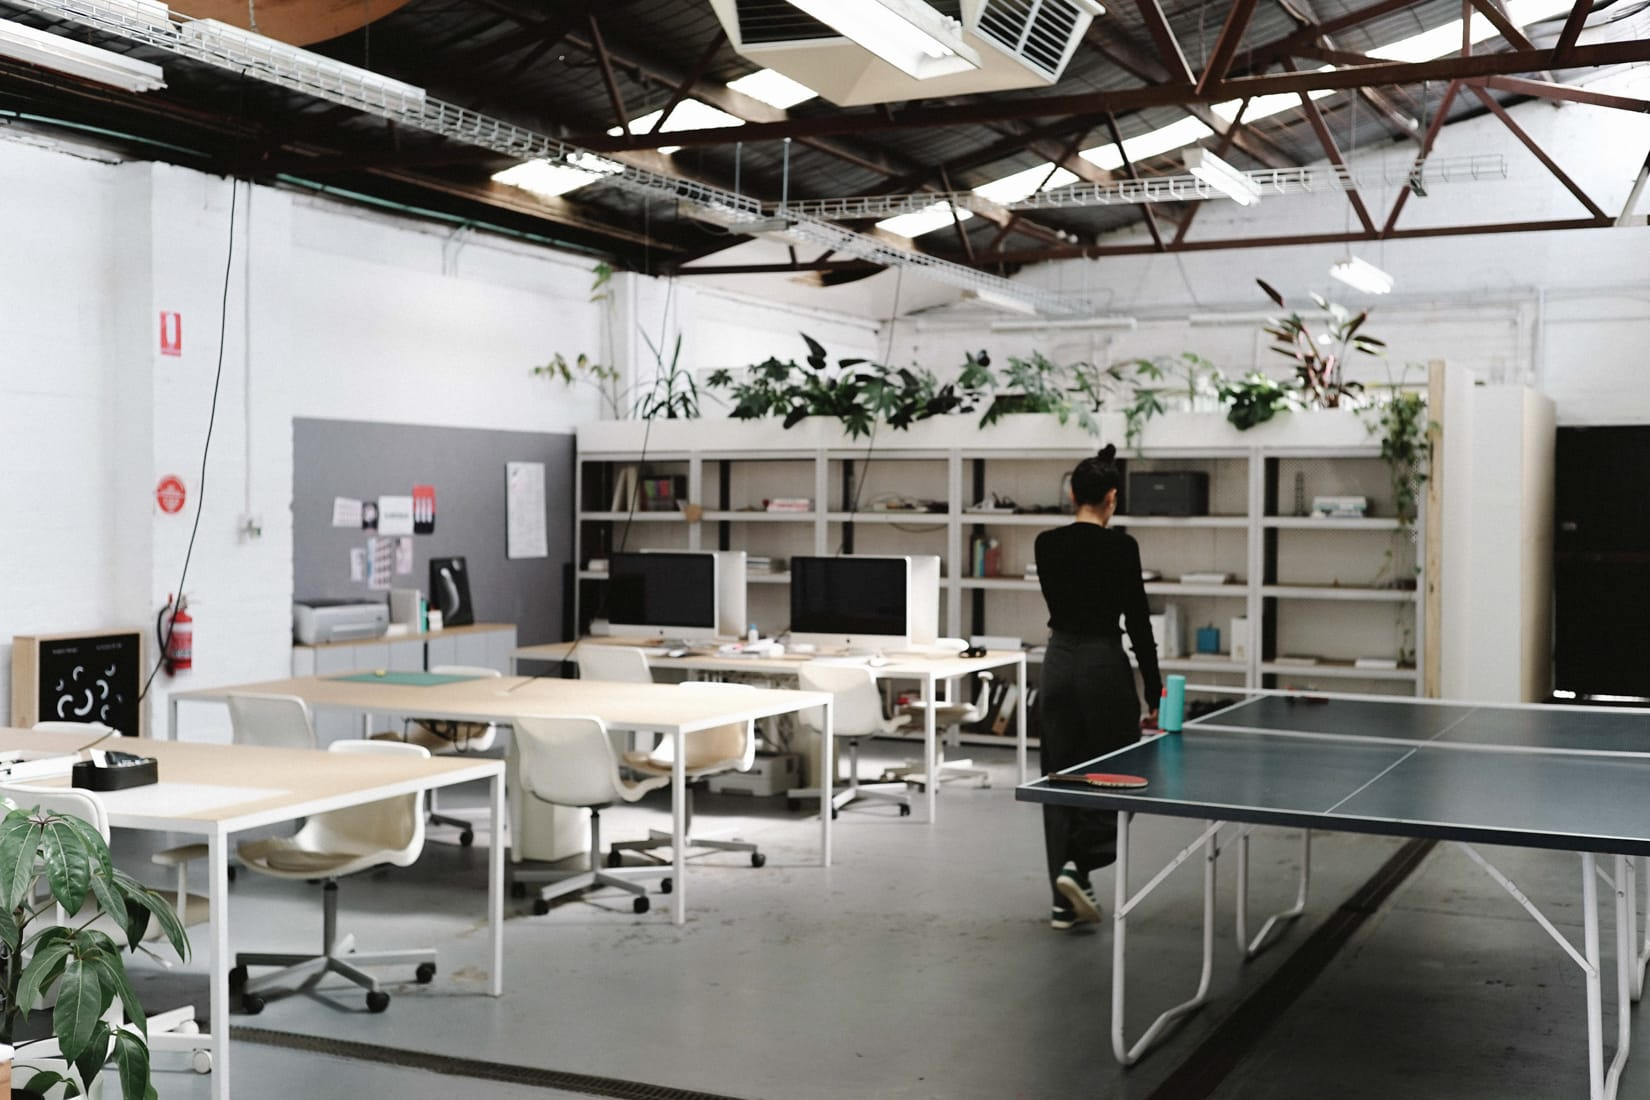 The Aark Collective studio space in Melbourne, Australia.